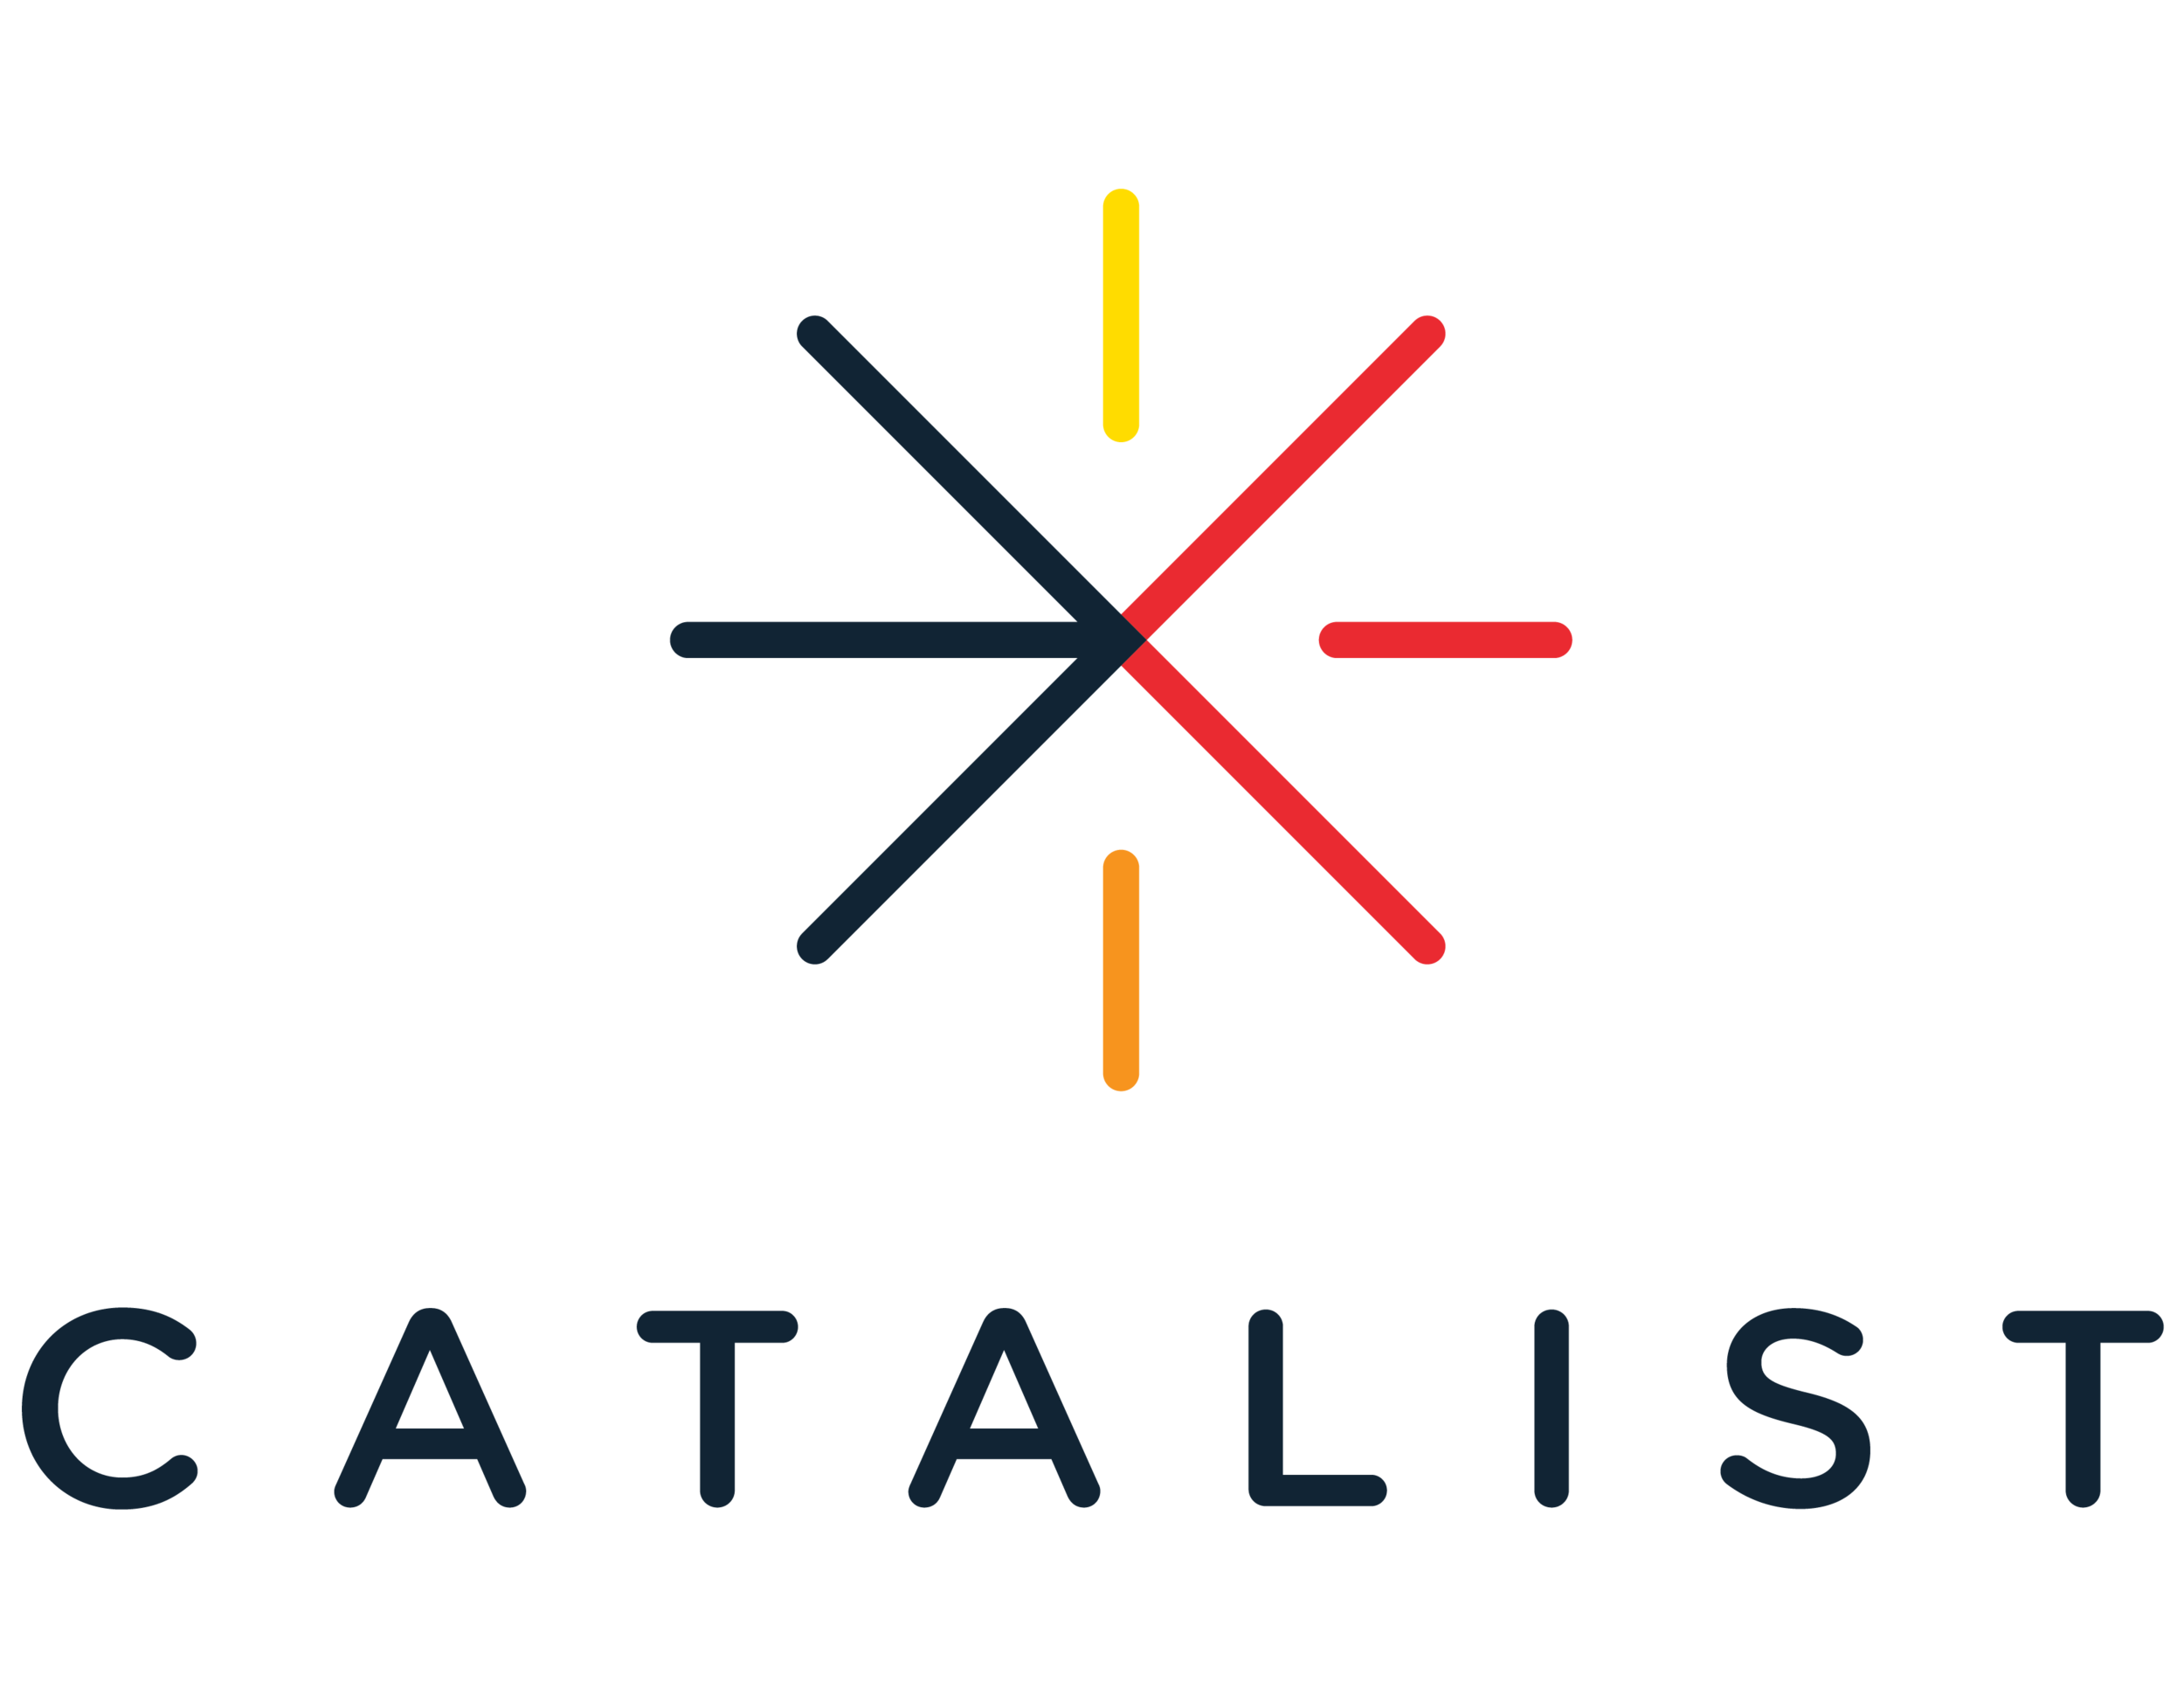 Catalist_logo-01 (2).png